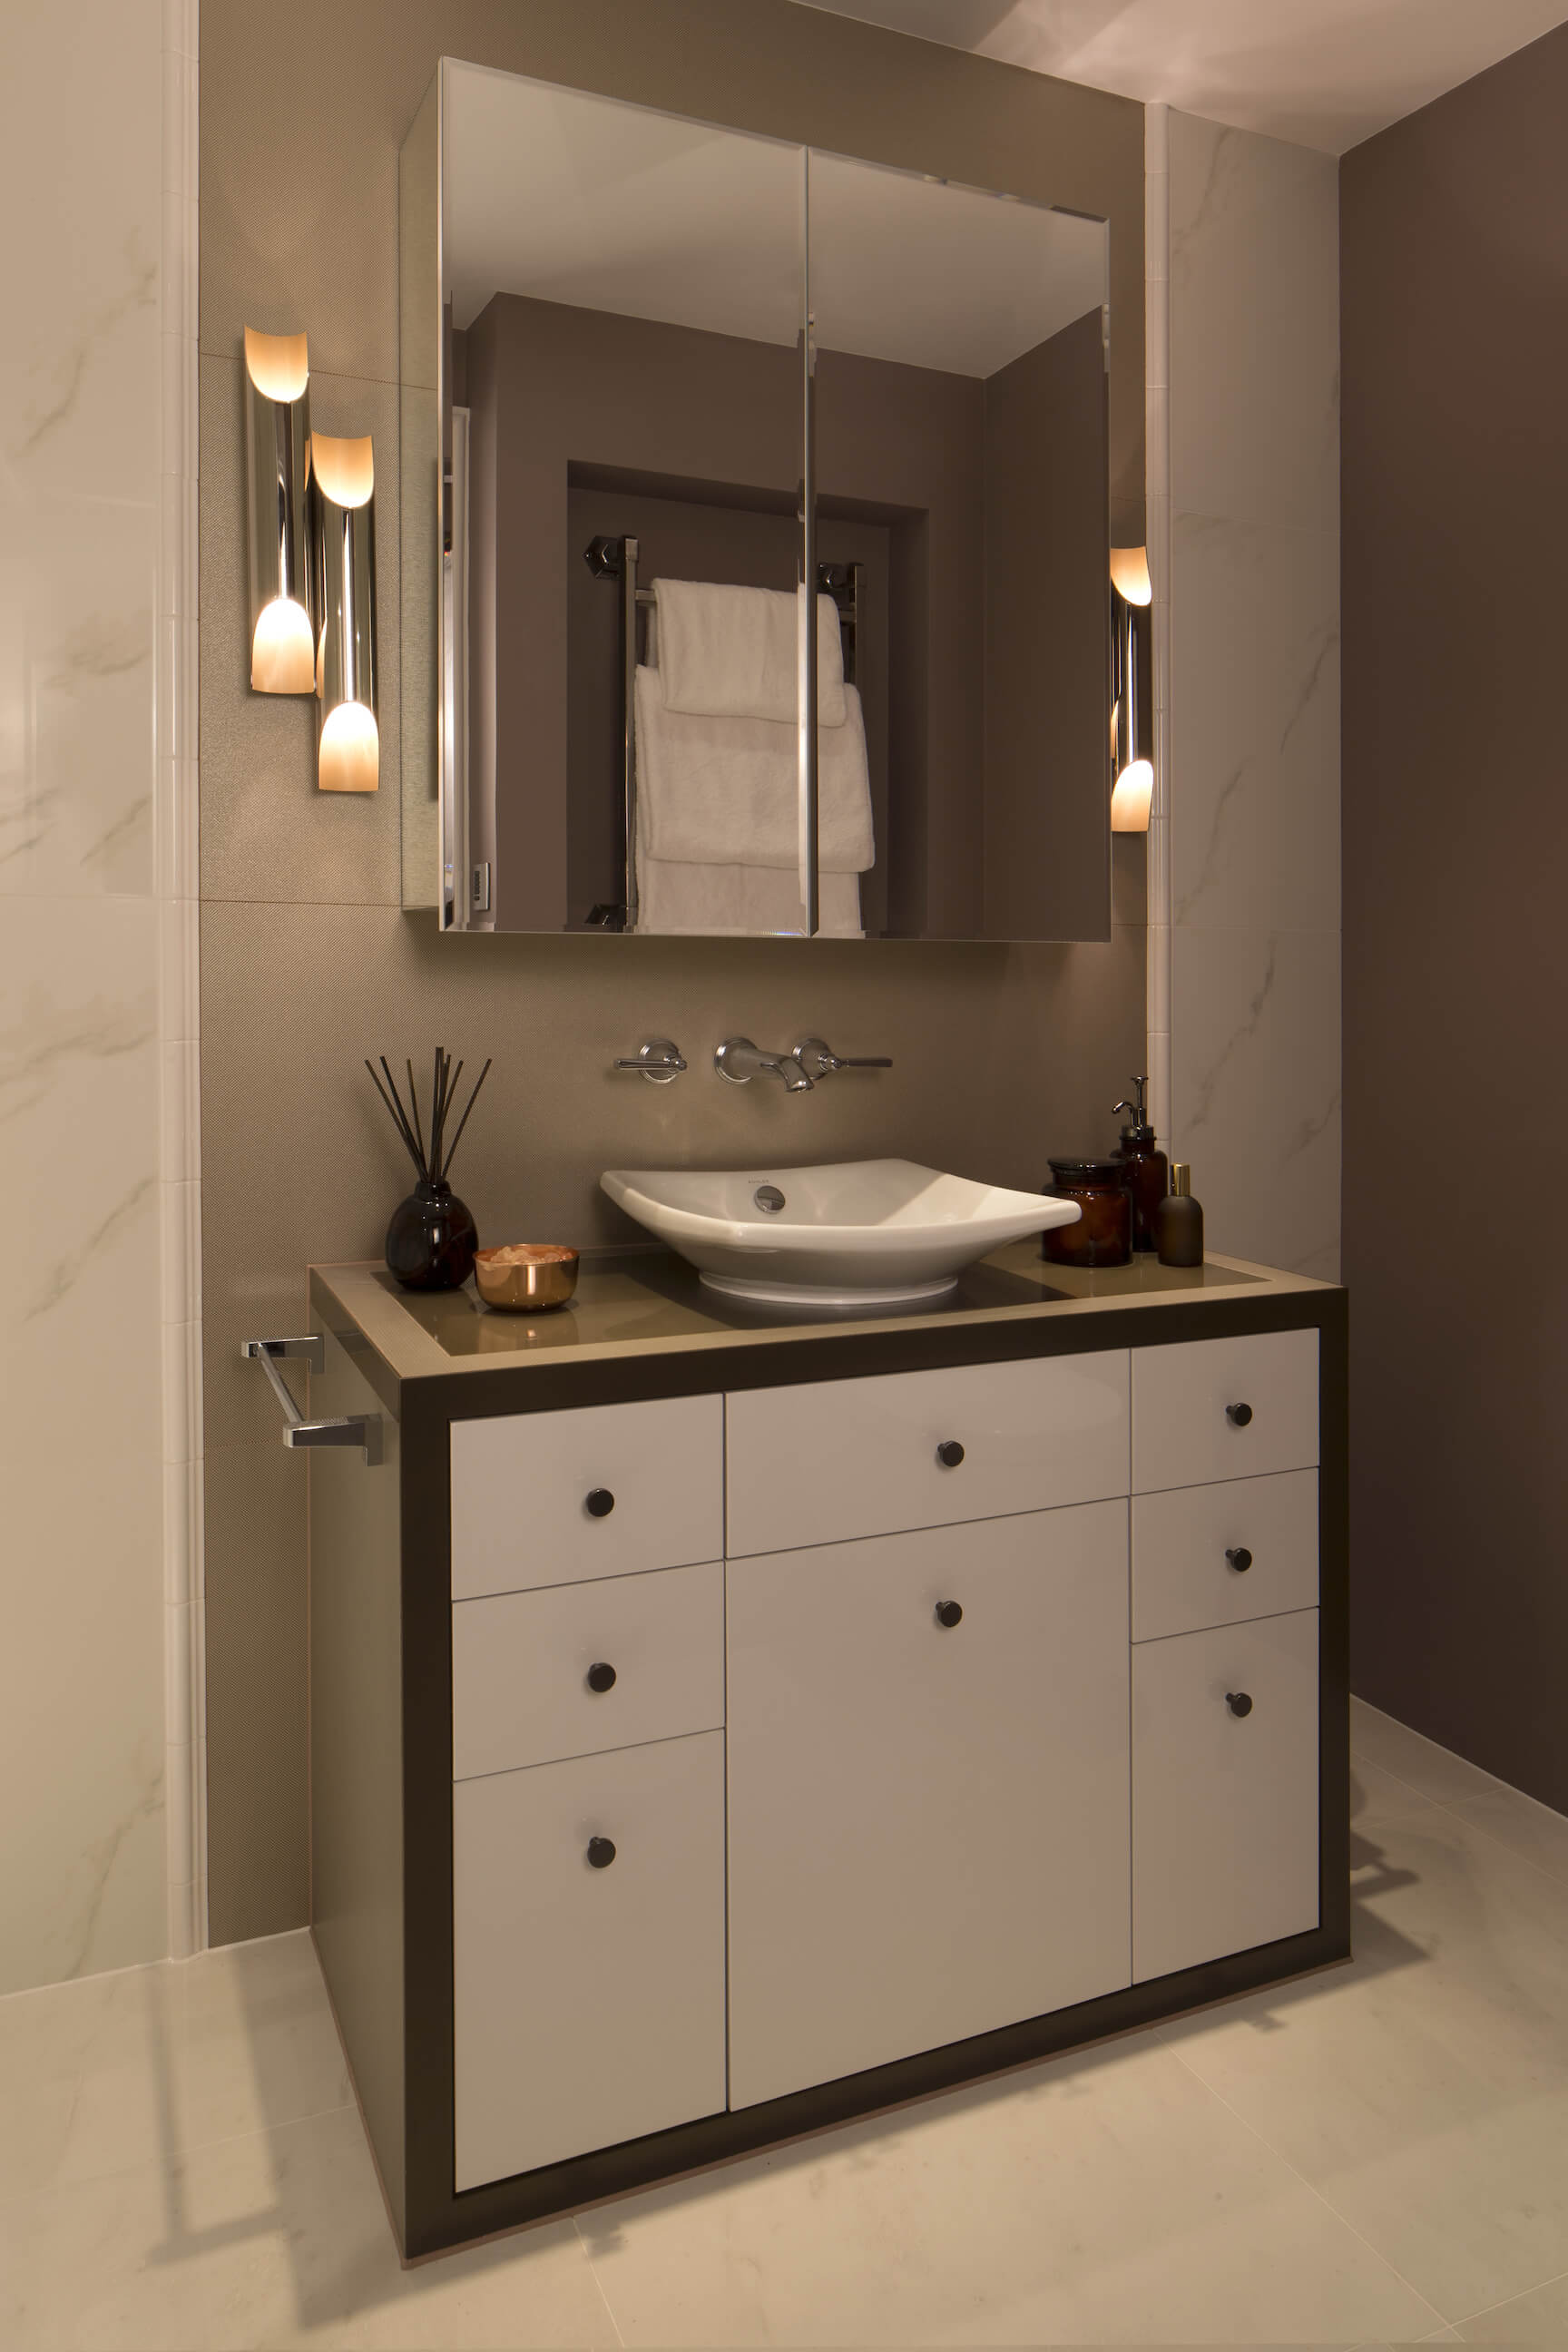 Another bathroom houses this bold, minimalist single vanity, with sleek white cabinetry and white vessel sink, framed in dark tones below a seamless two piece mirror.